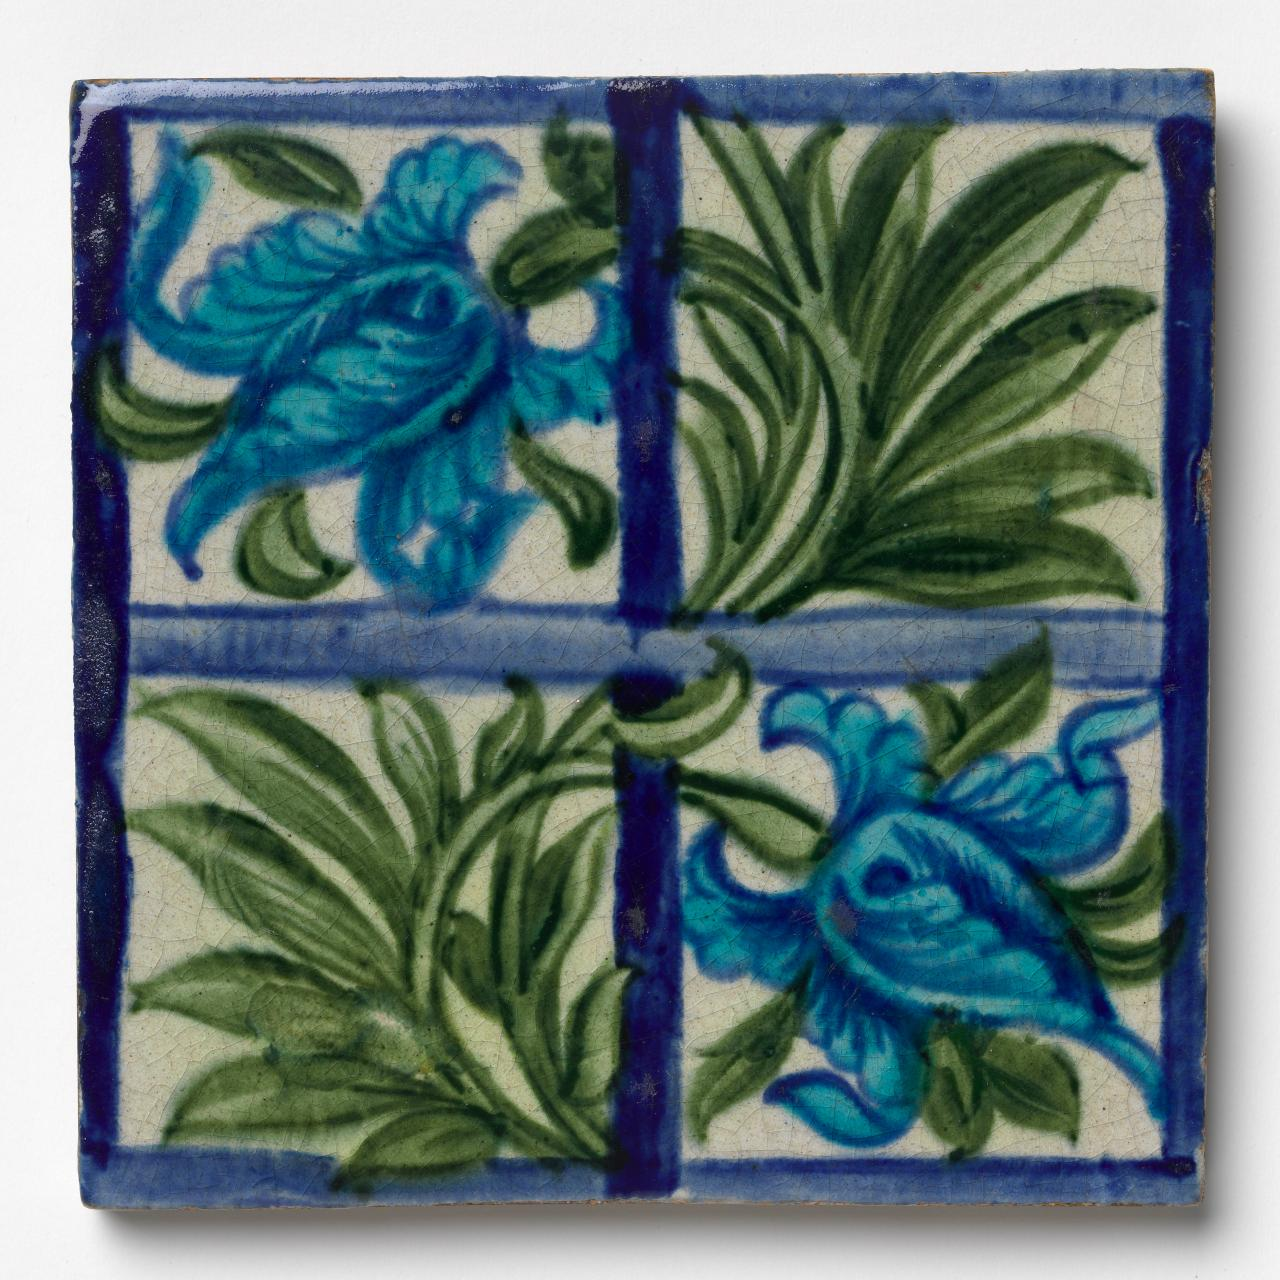 Persian tulips and foliage, tile